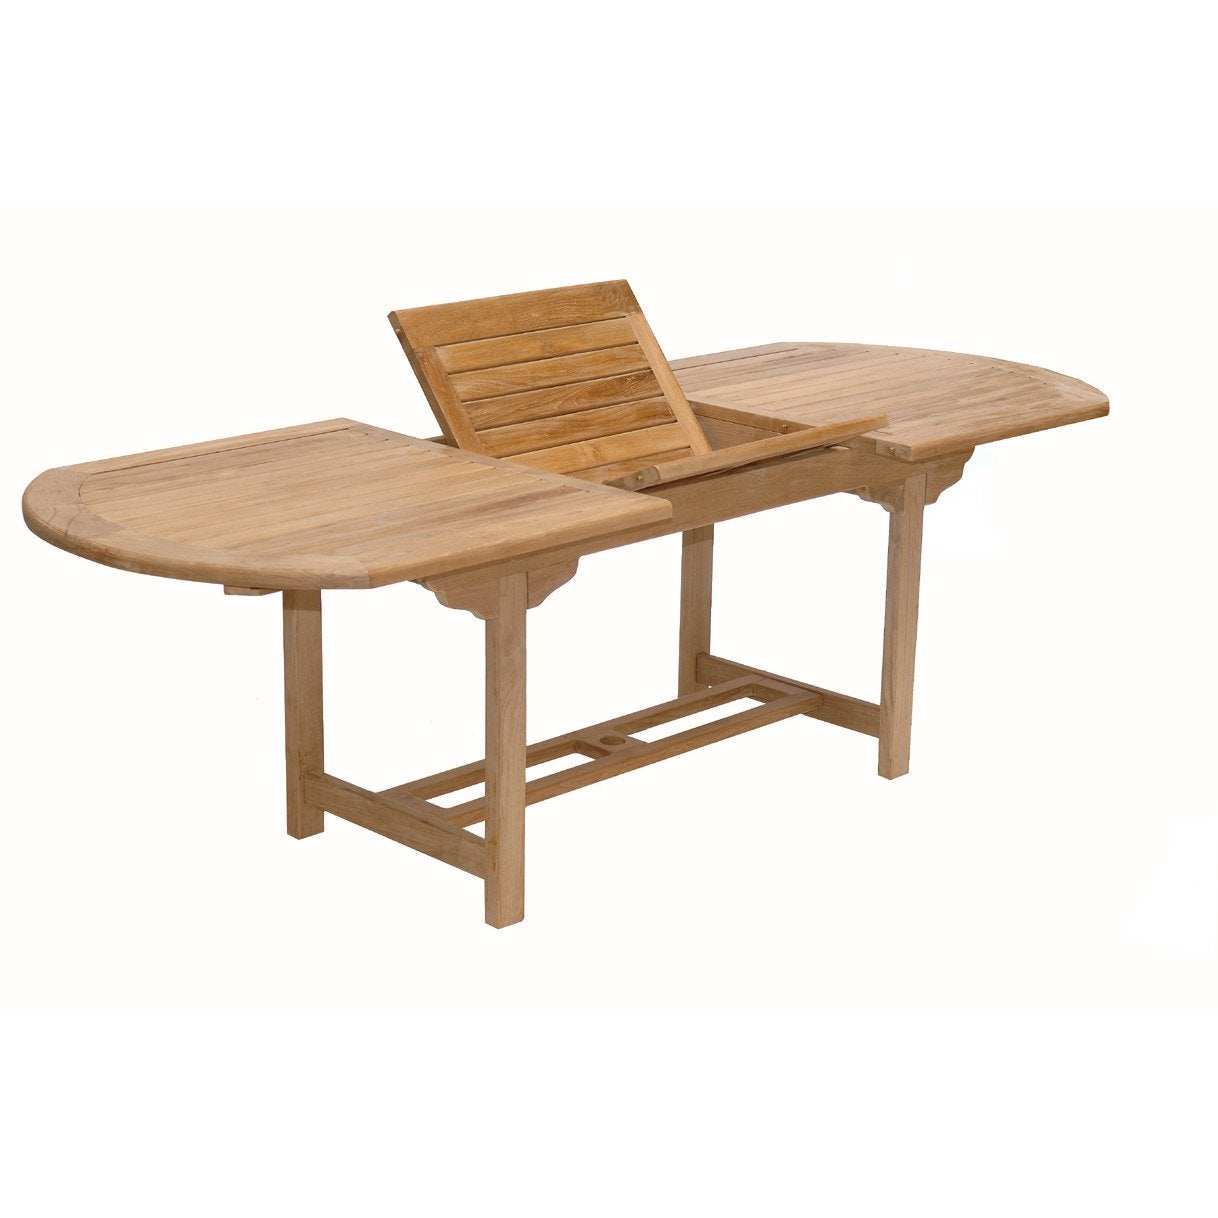 Table de jardin azur ovale naturel 8 personnes leroy merlin for Table jardin 8 personnes